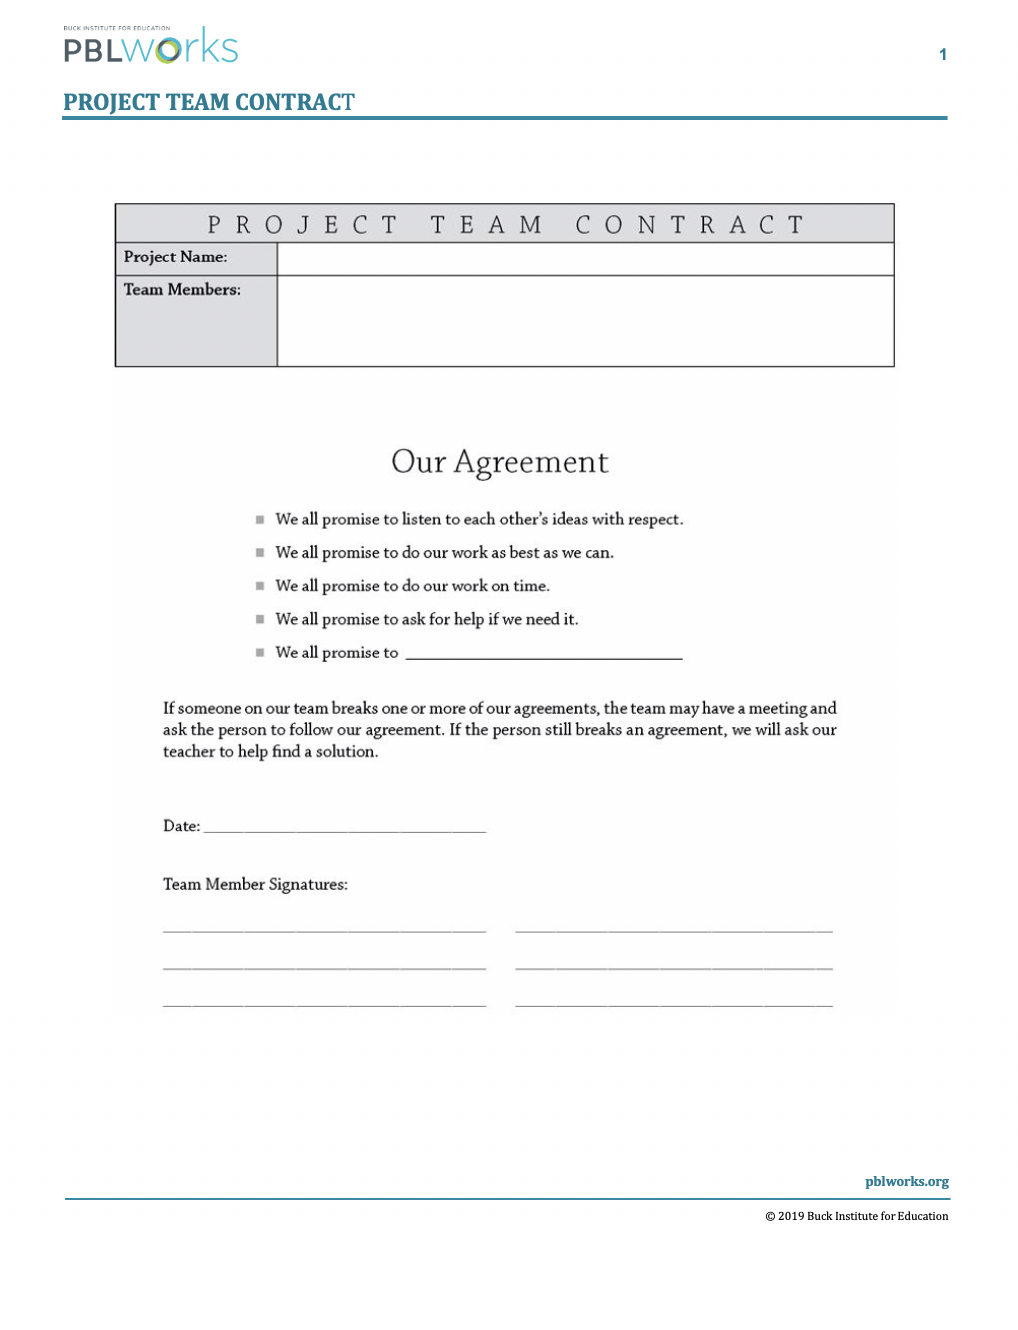 Project Team Contract